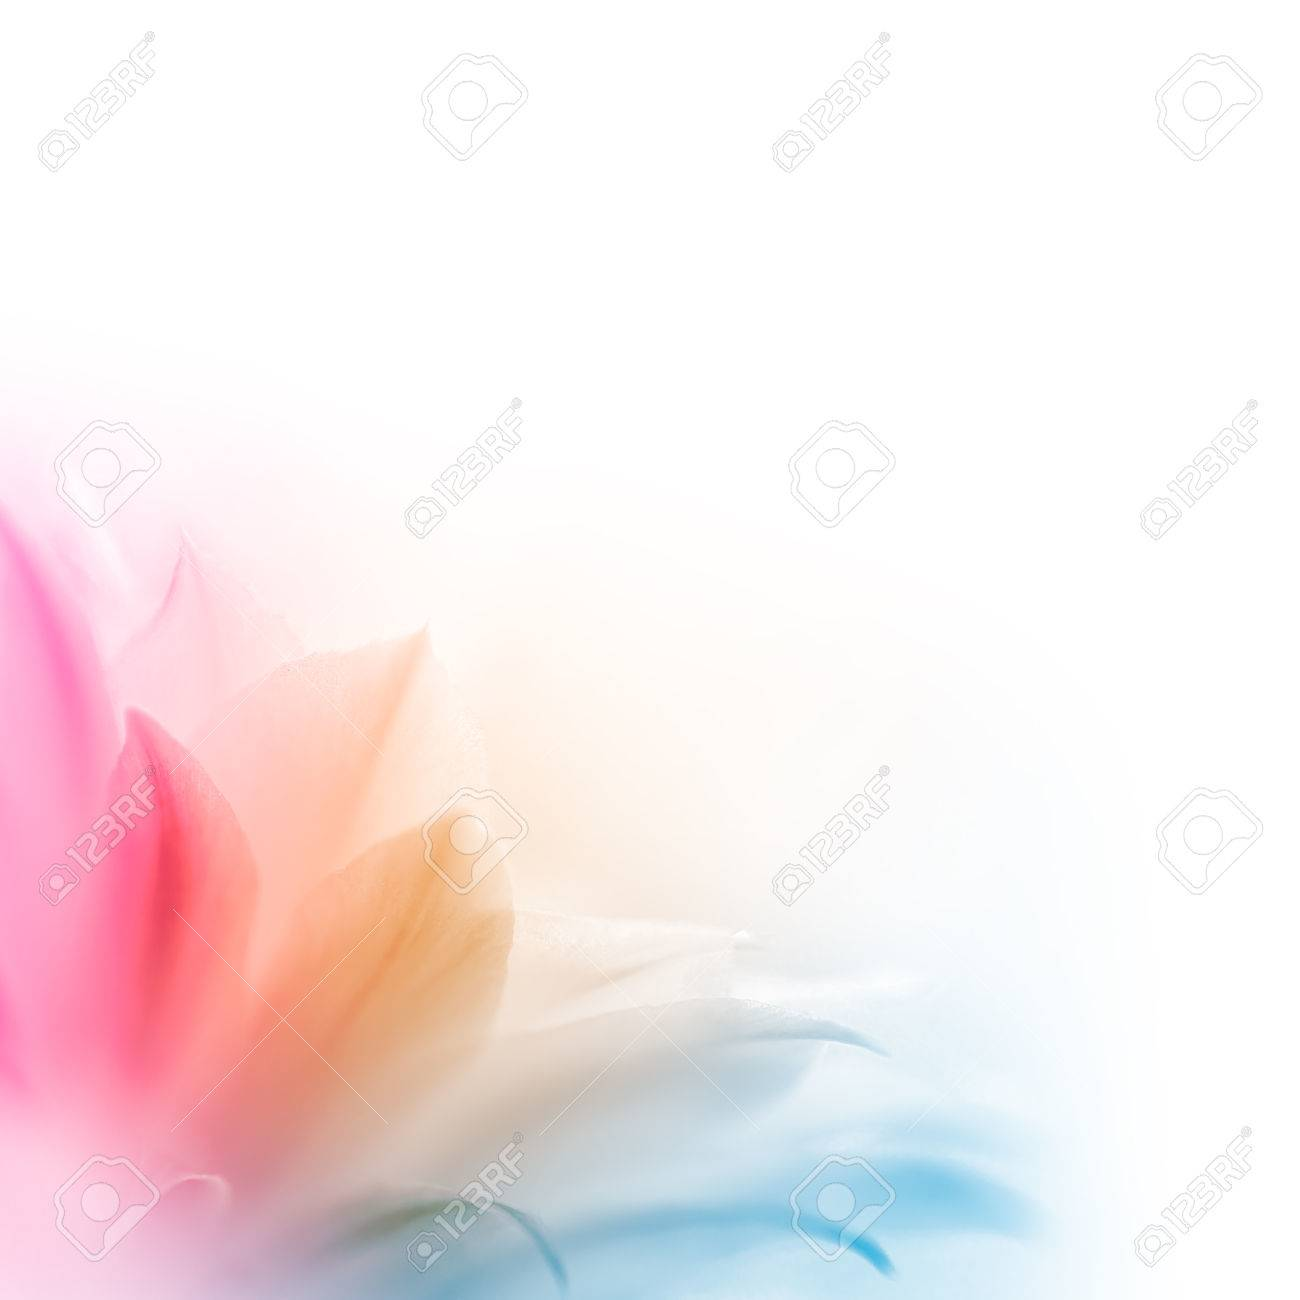 Bright Multicolored Cactus Flower on the White Background. Abstract Design - 33252854